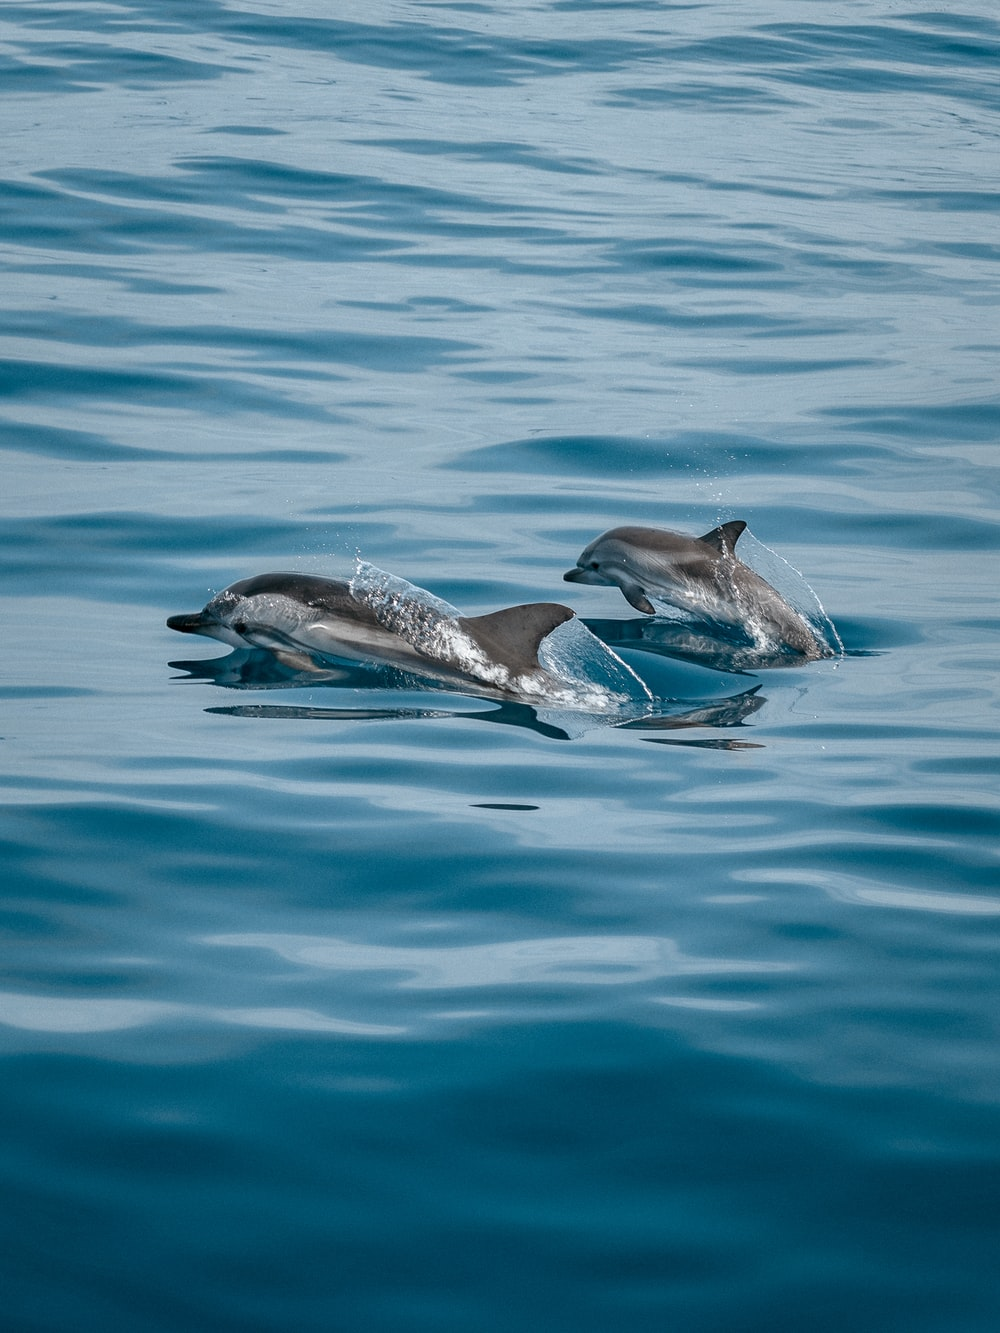 2 dolphins in the water